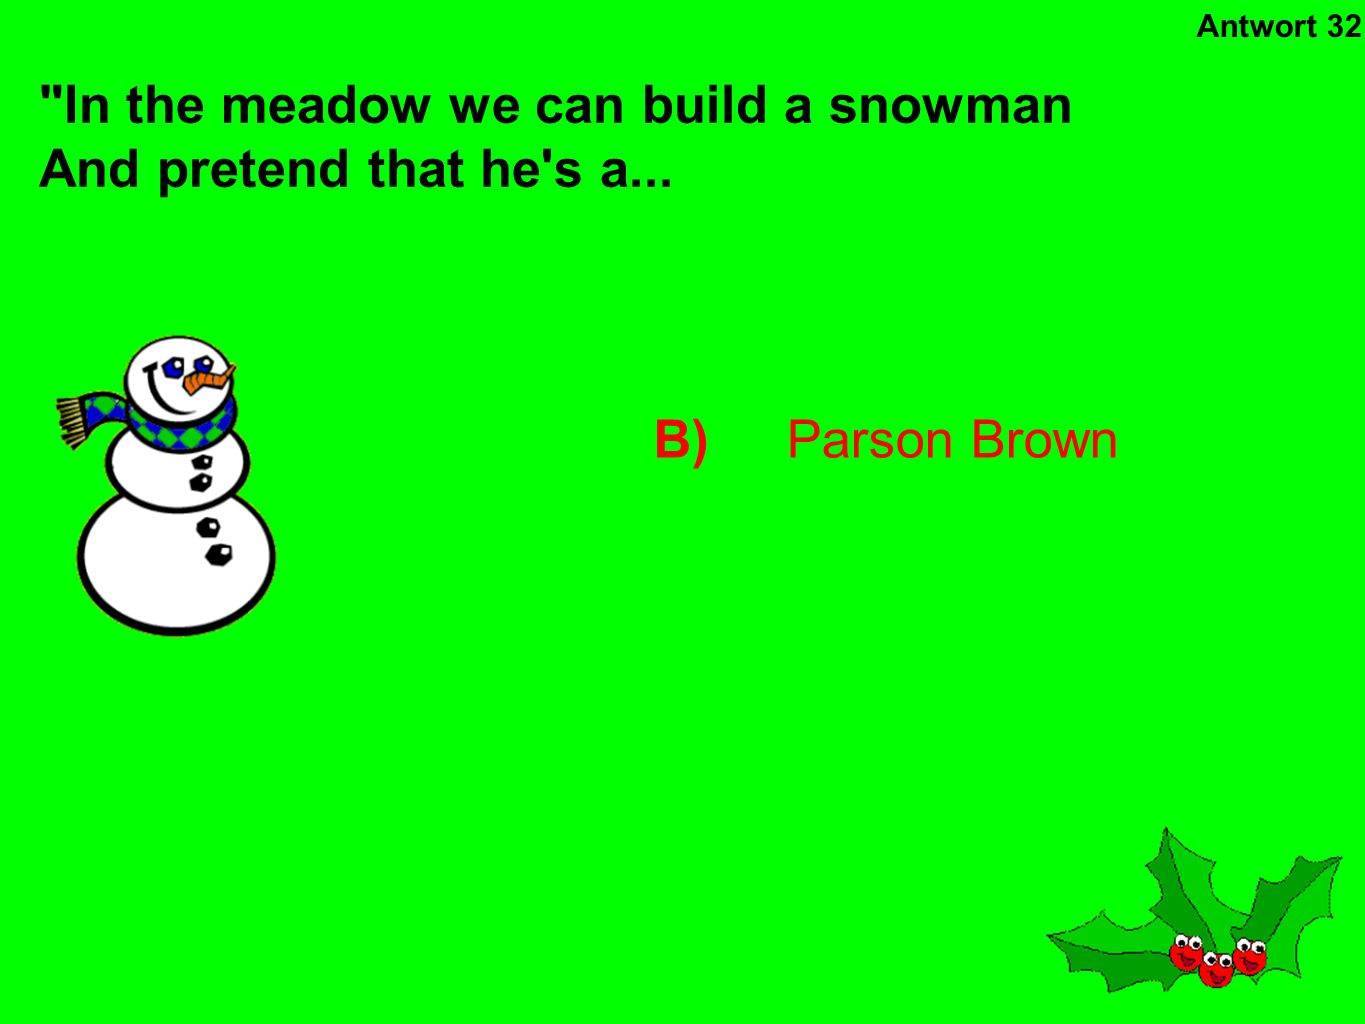 In the meadow we can build a snowman And pretend that he s a...